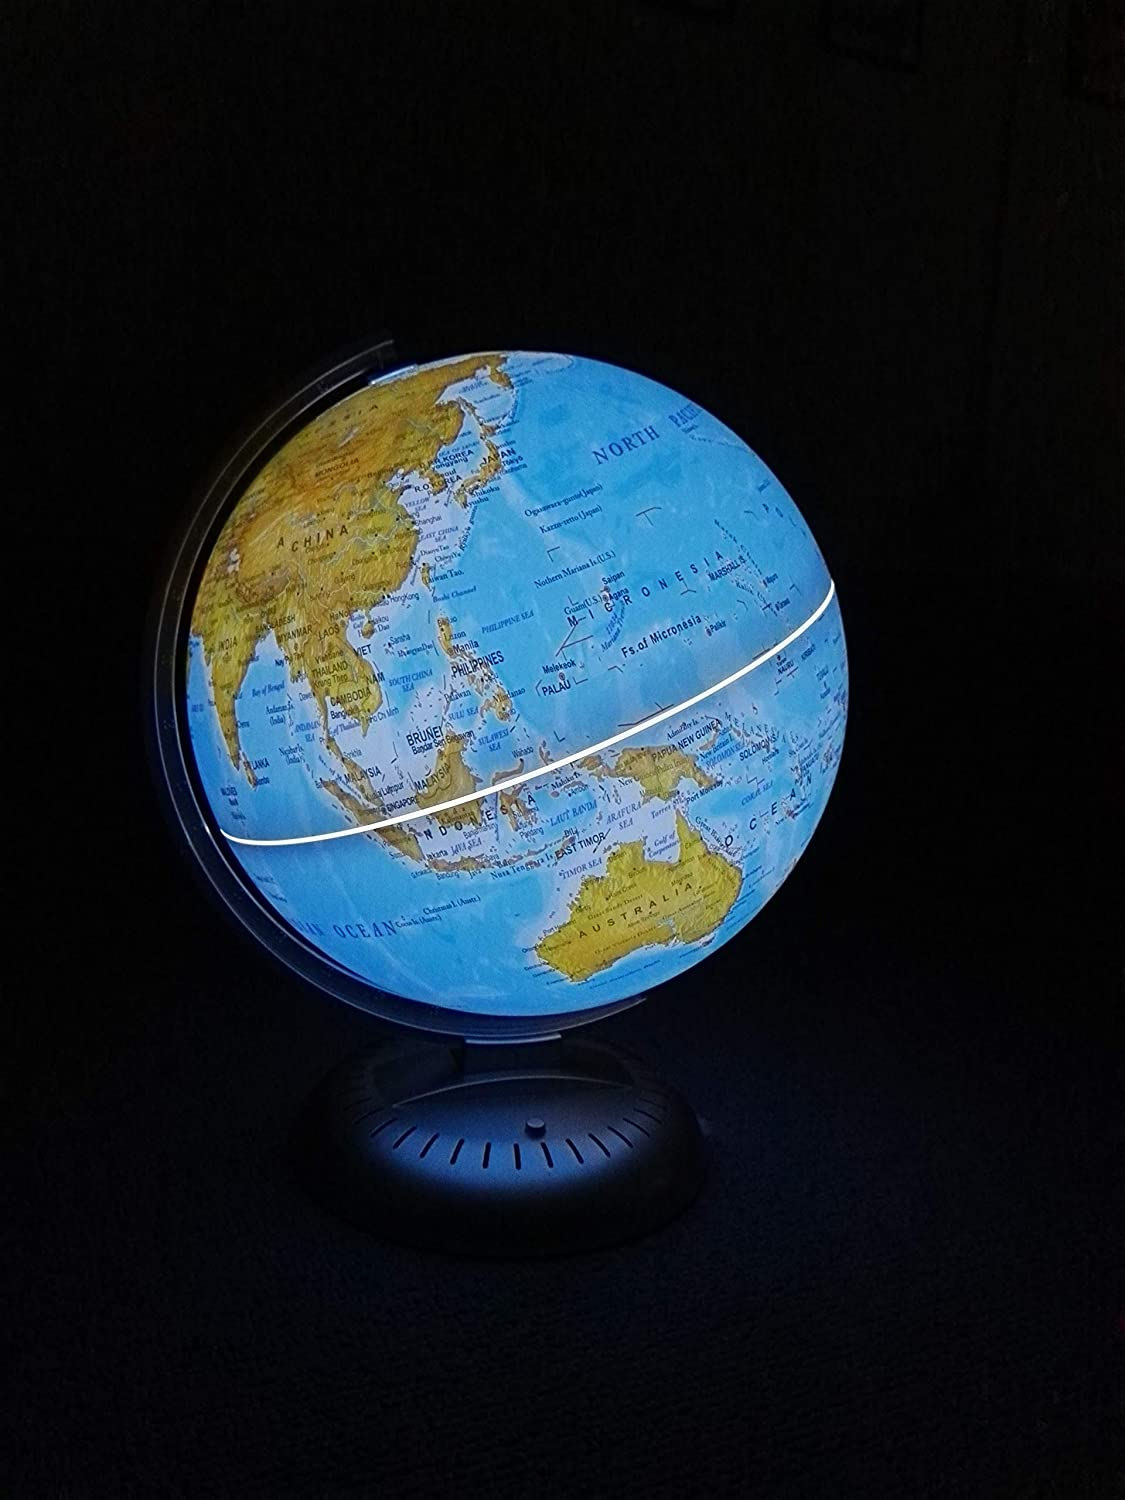 Interactive 2 in 1 Illuminated World Globe for Kids with Stand with Built-in LED for Illuminated Night View Lights up in Dark